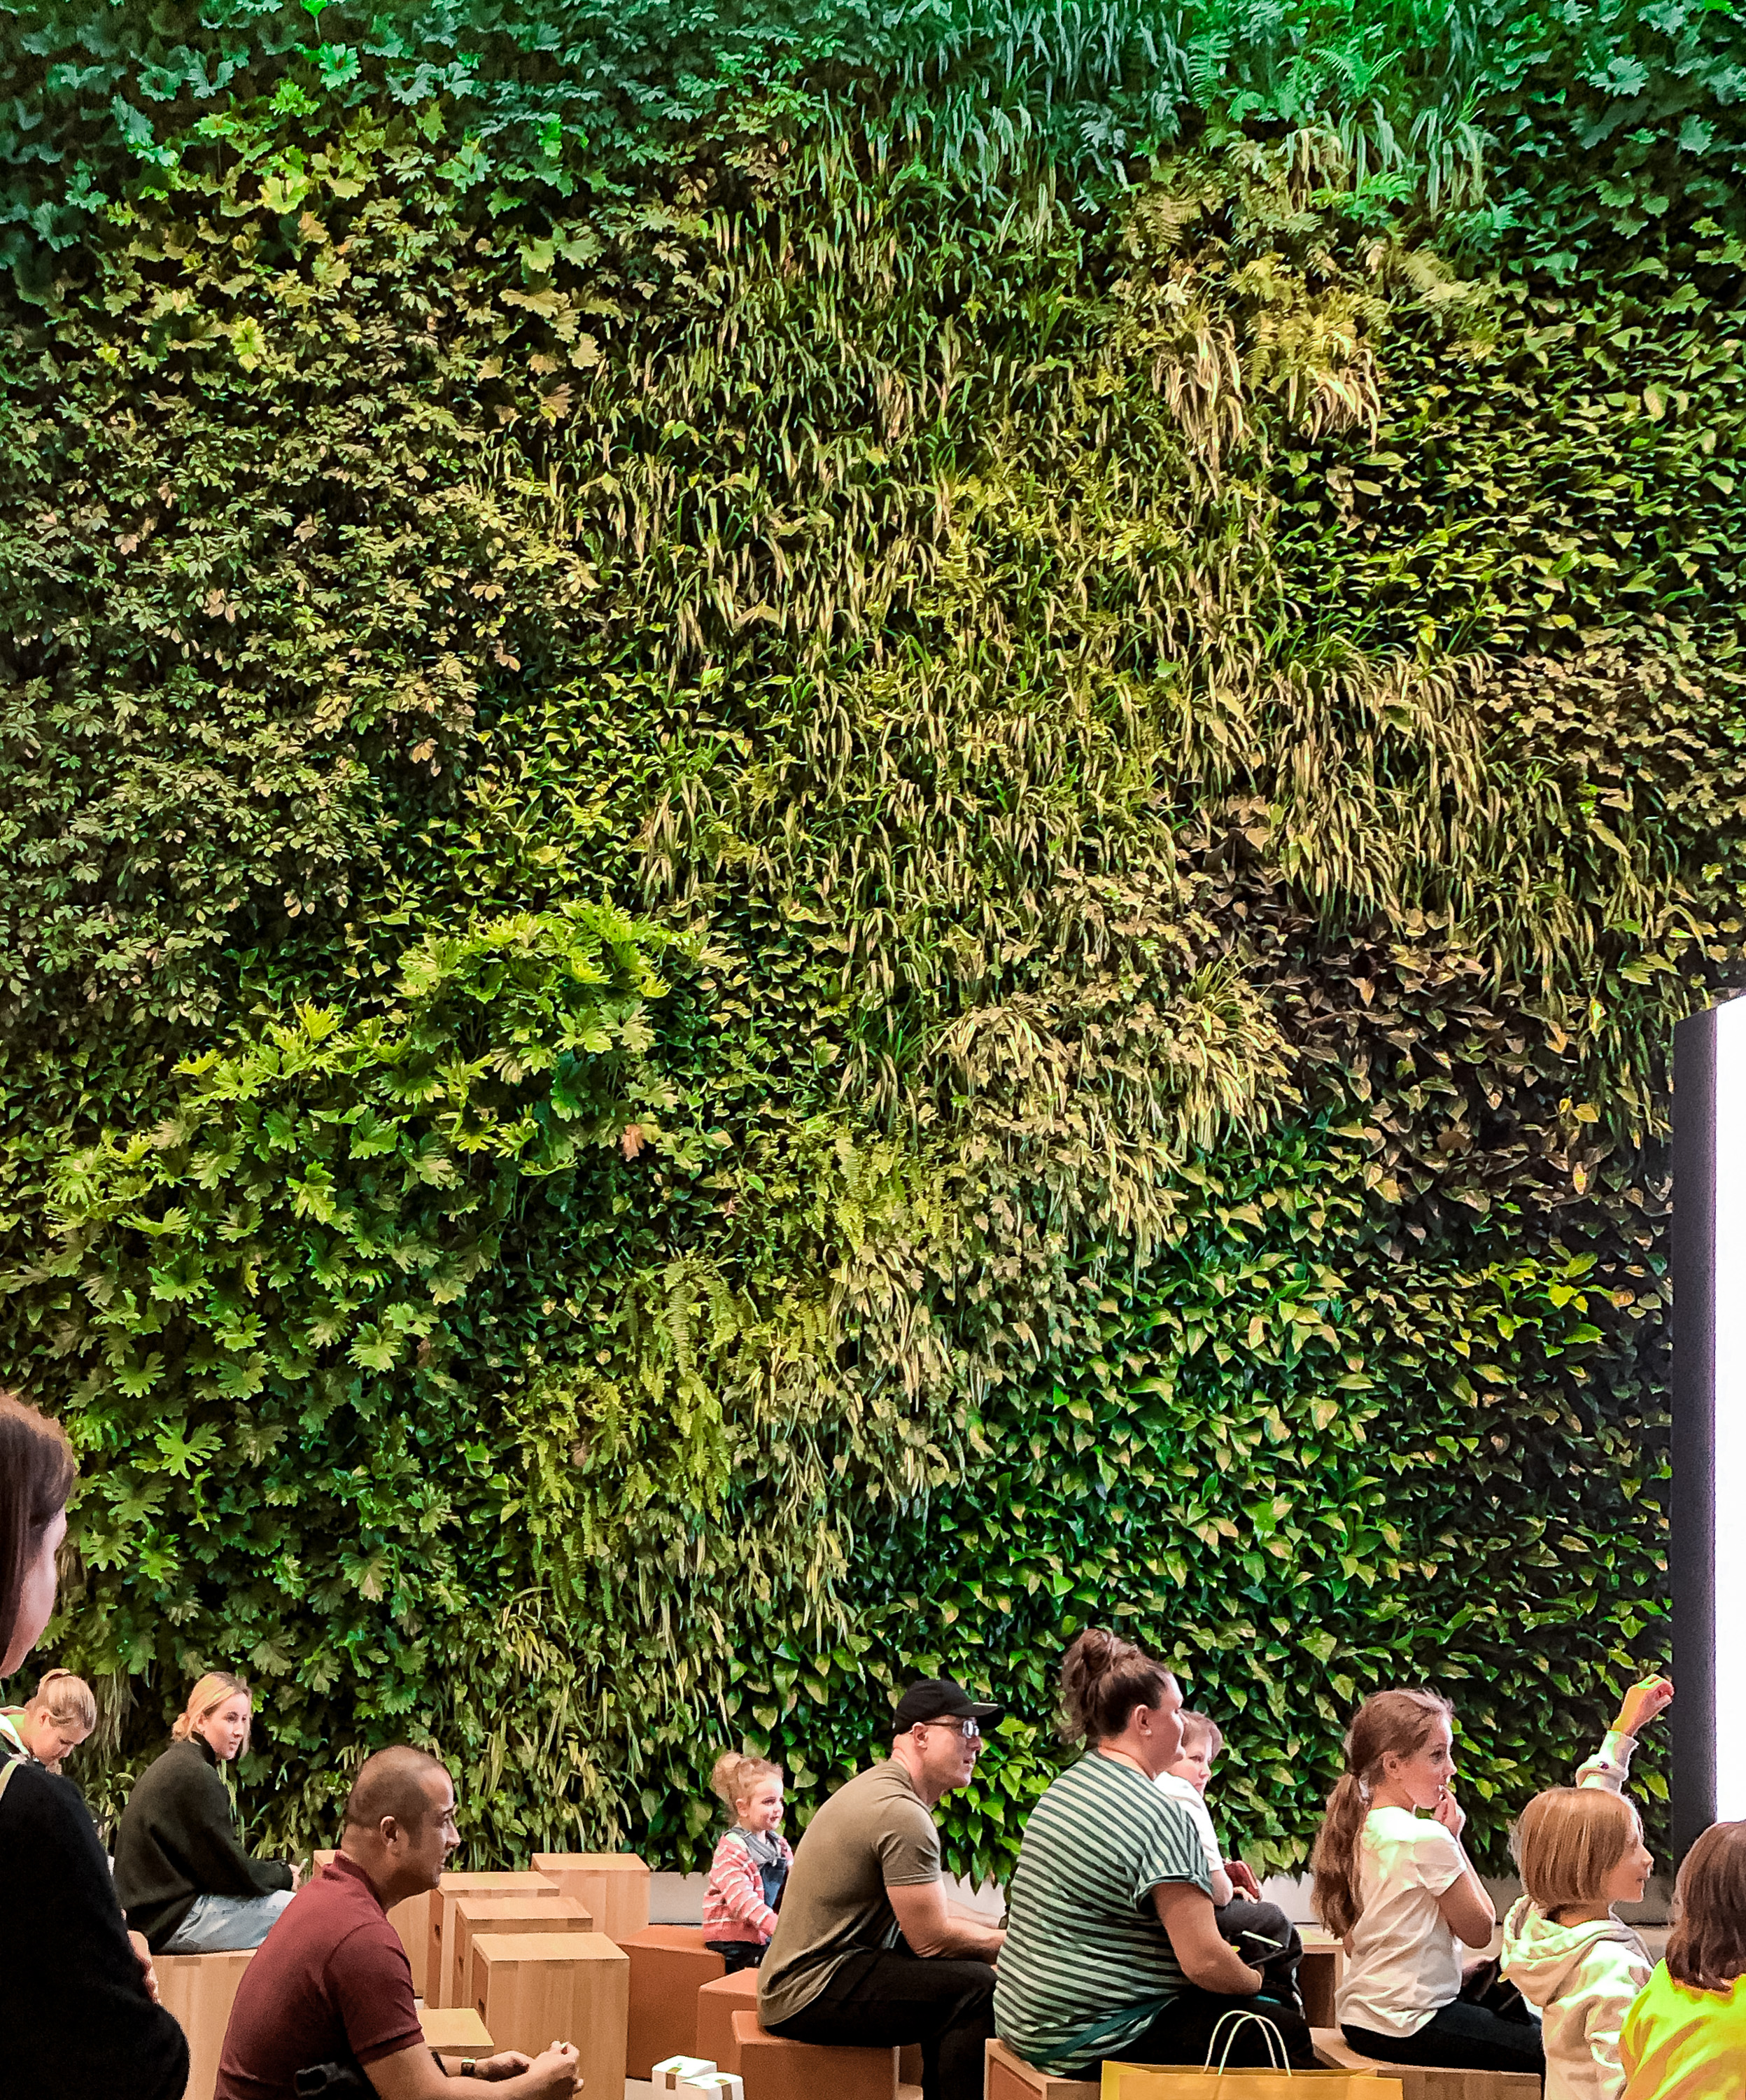 Apple Bondi Green Wall